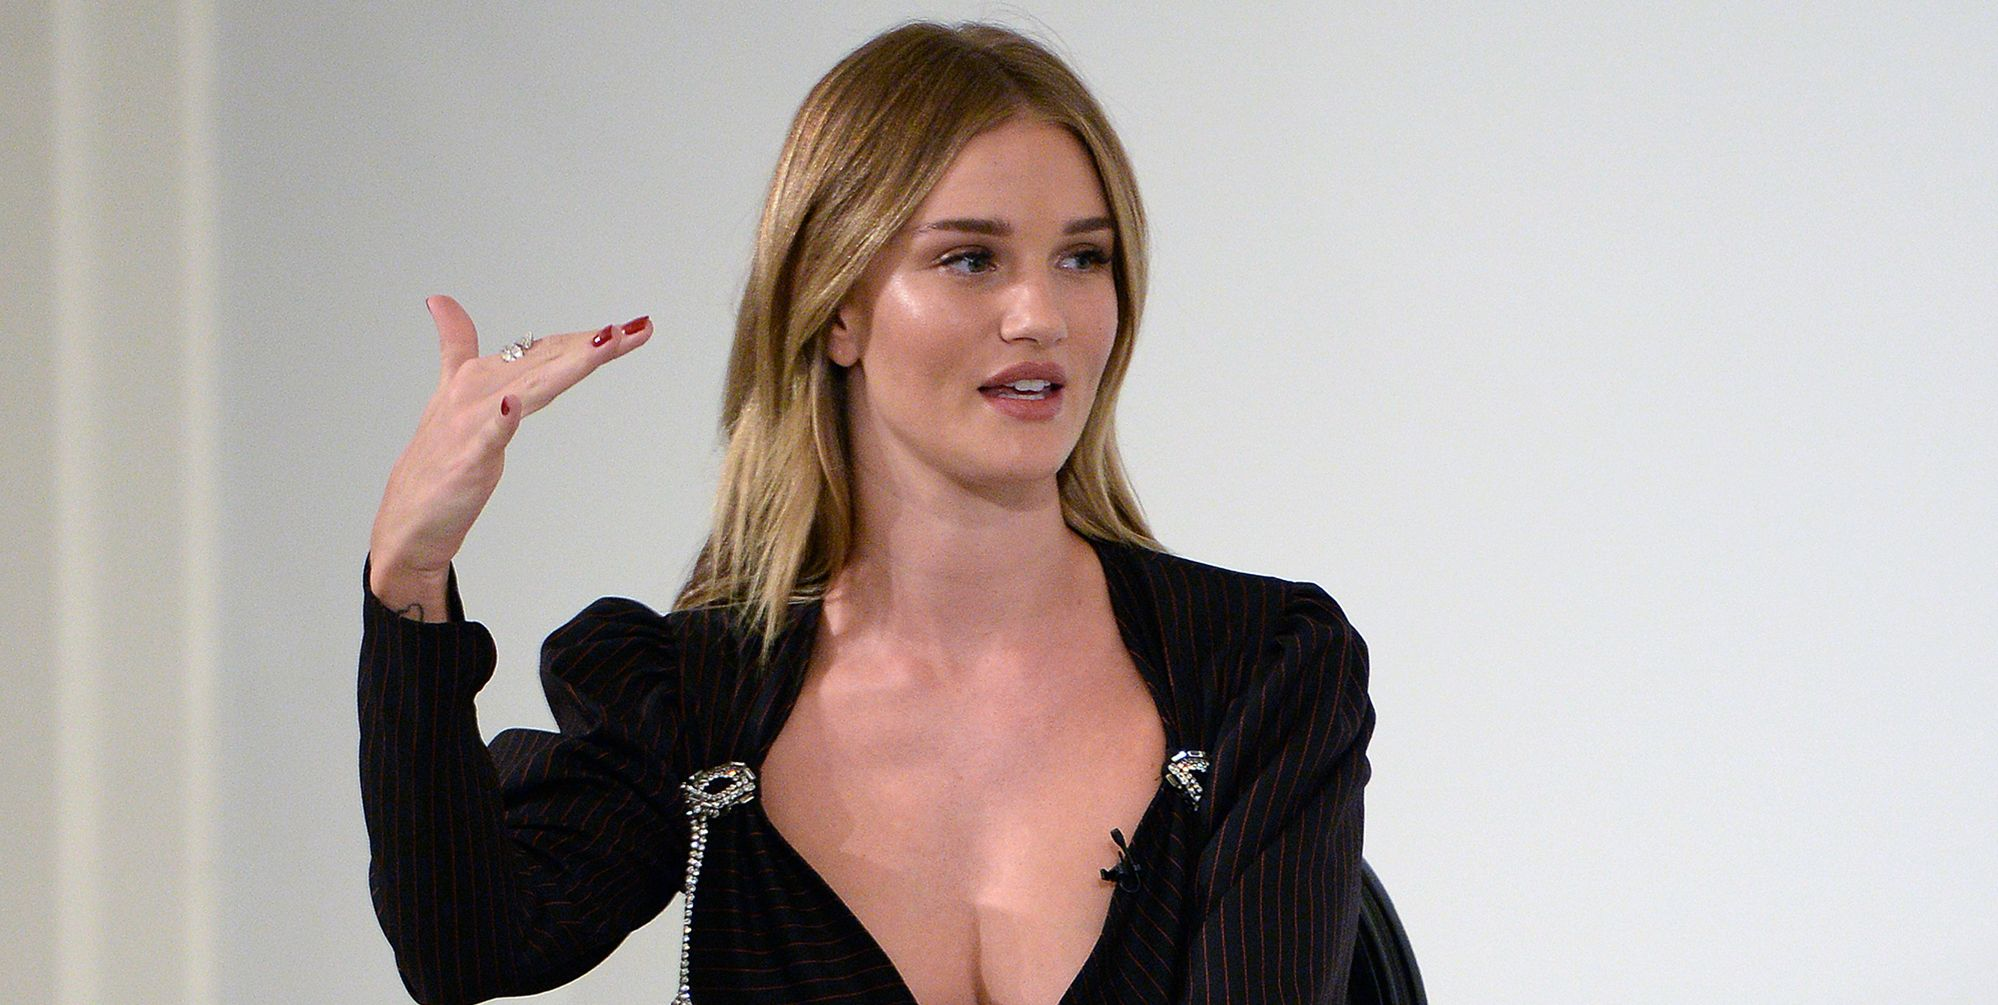 Rosie Huntington-Whiteley at the Bazaar Summit